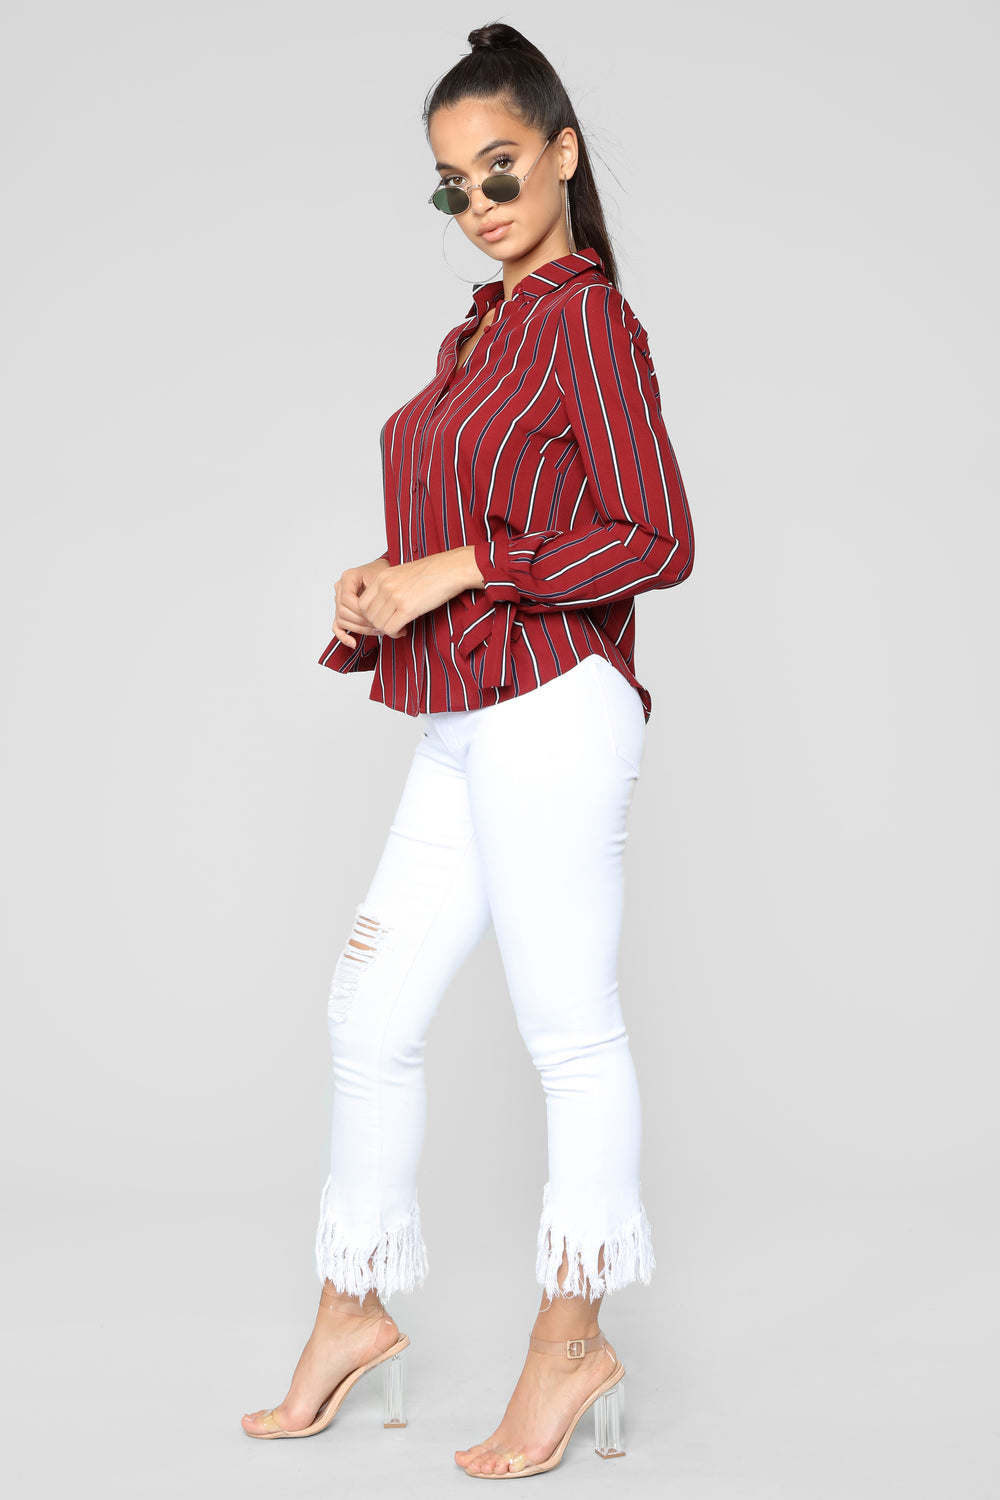 Yaretza Striped Top - Burgundy